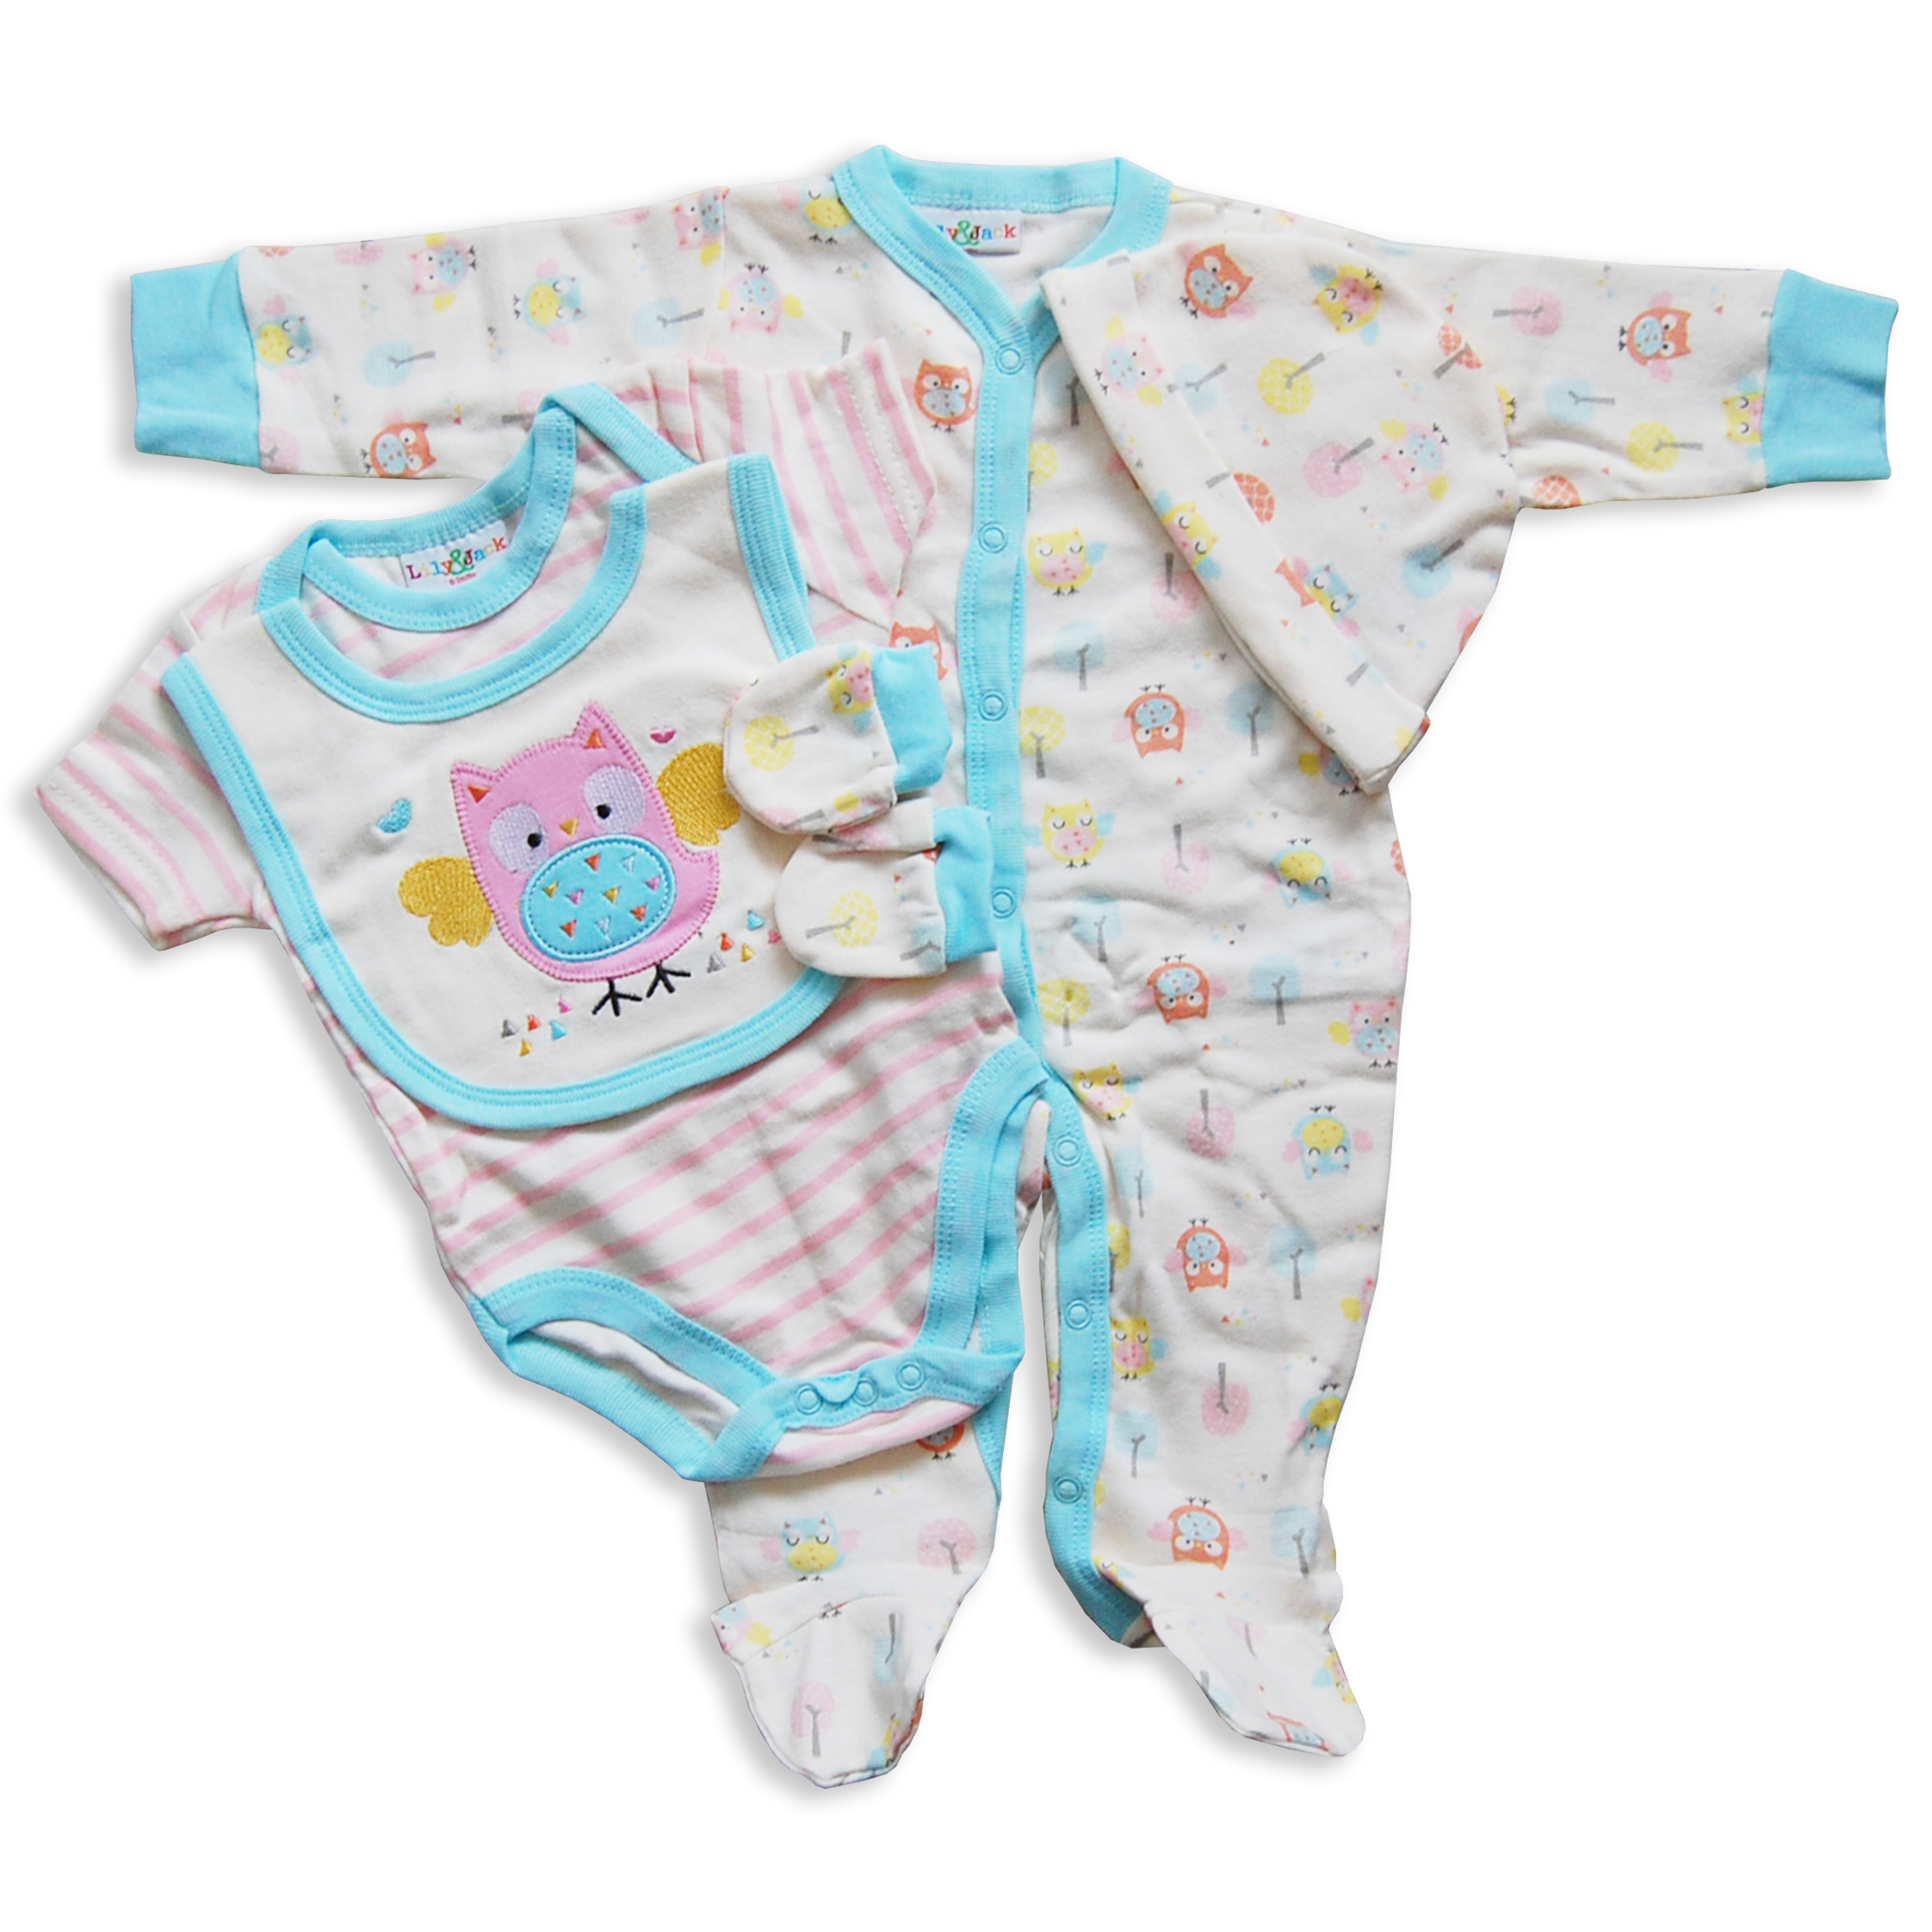 Fresh Images Of Baby Clothes Box Cutest Baby Clothing And